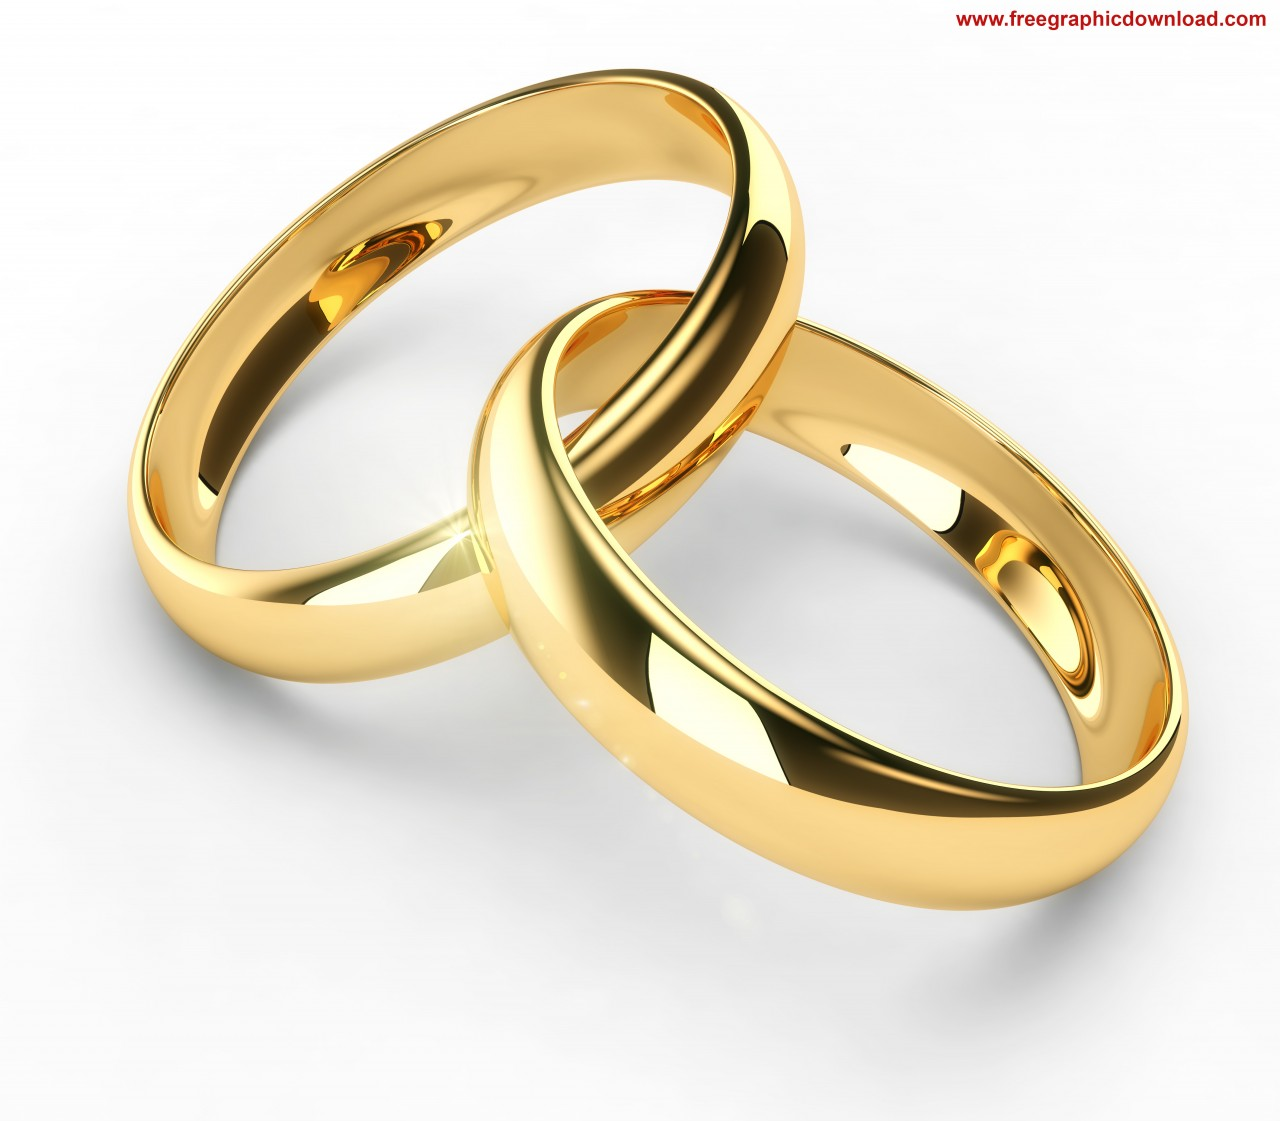 gold wedding rings clip art the wedding design guide - Ring Wedding